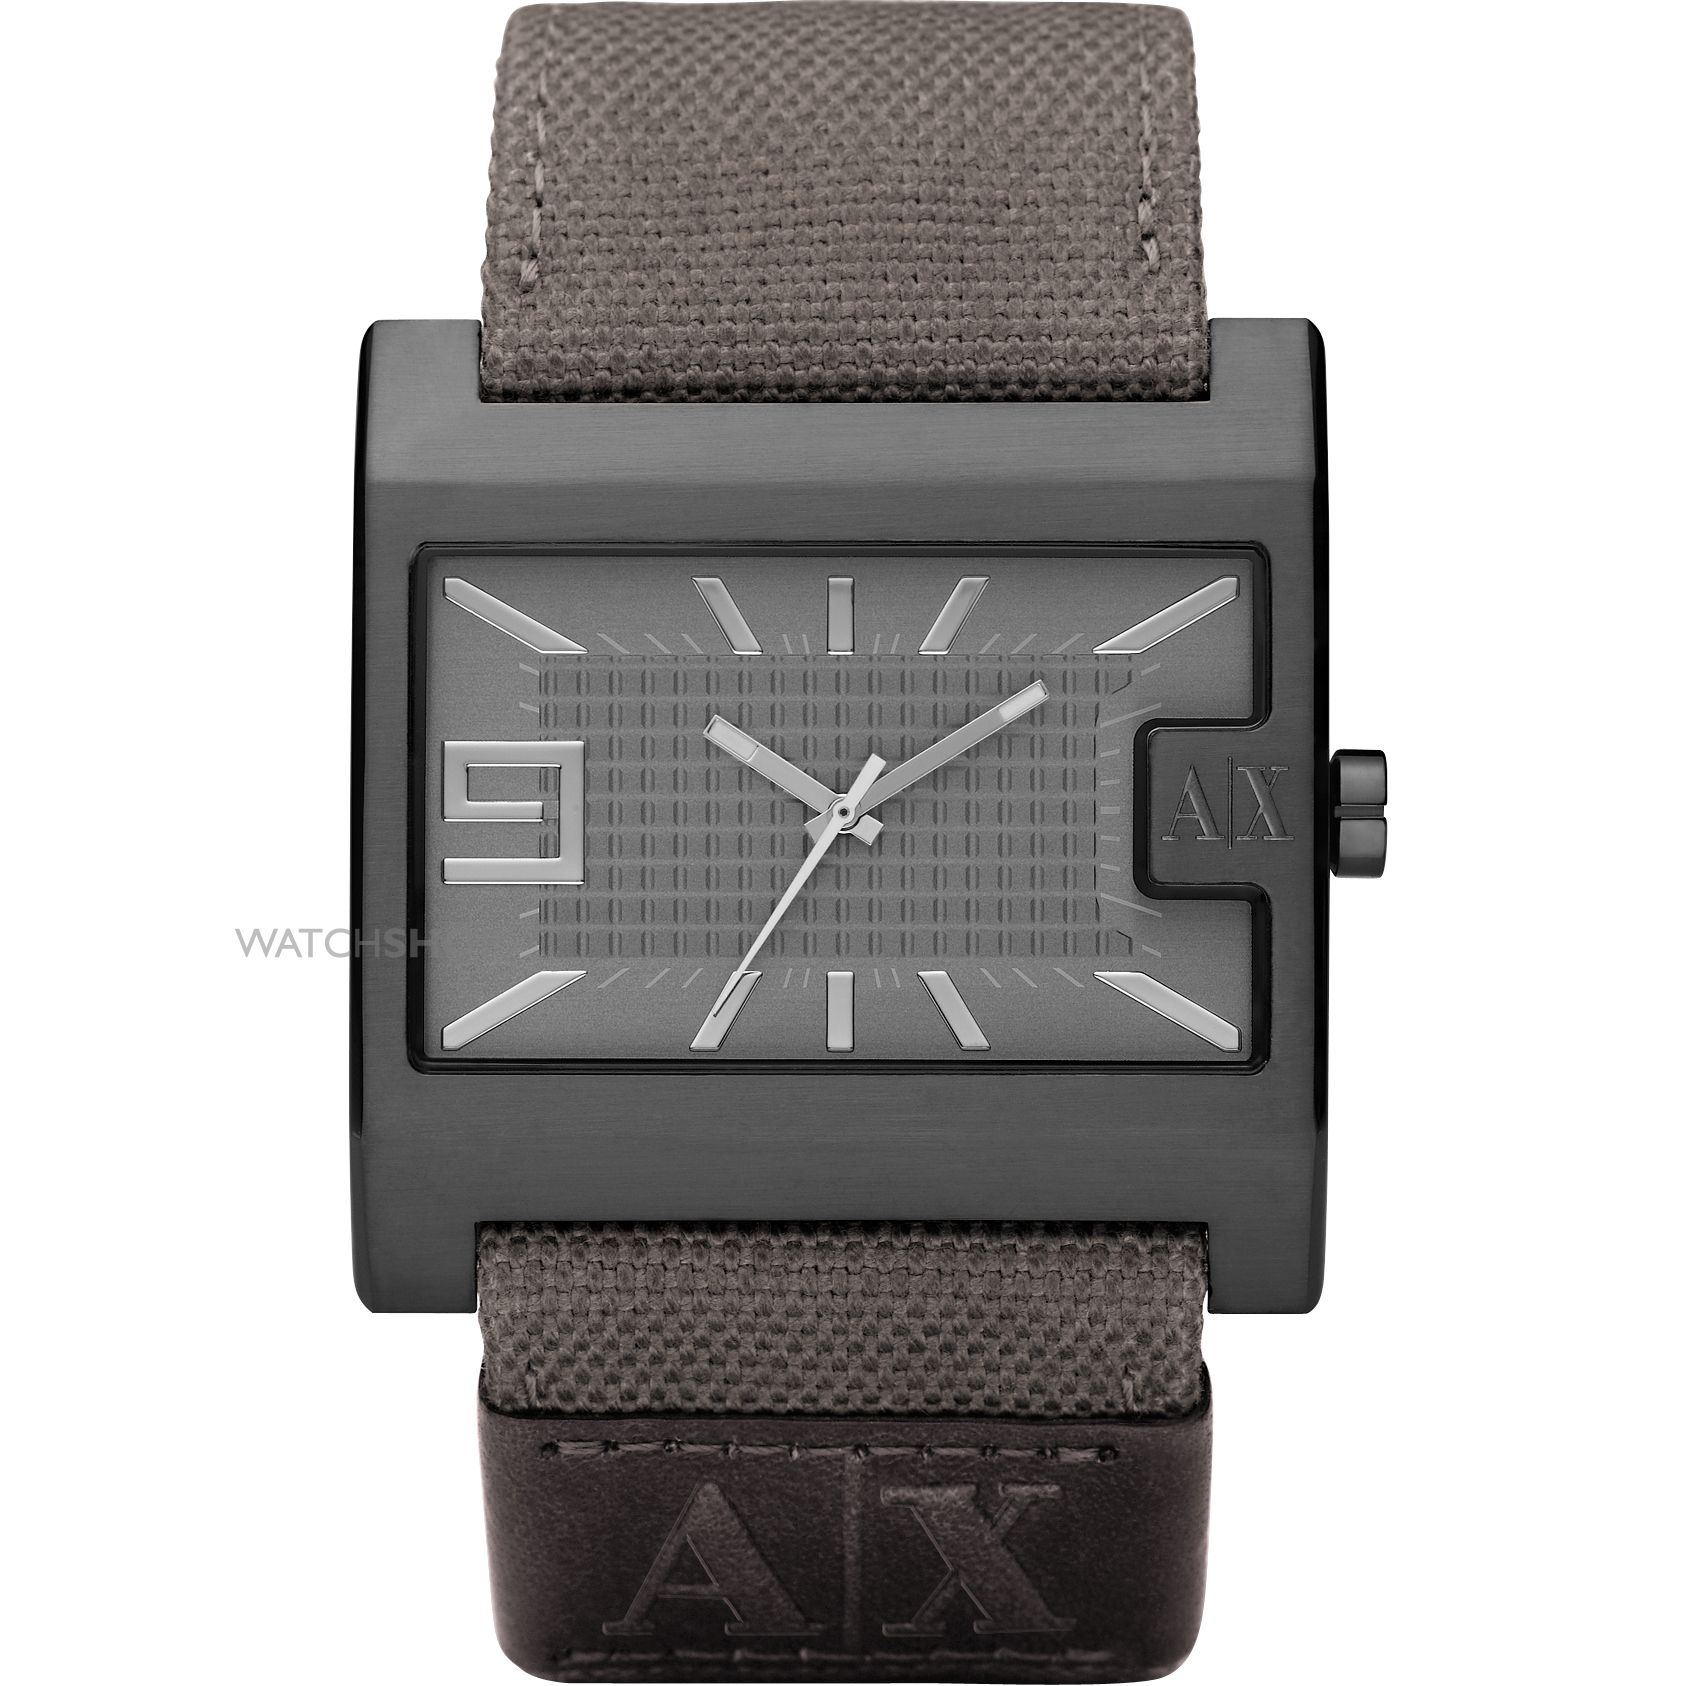 exchange watches for men on armani exchange watches for men on